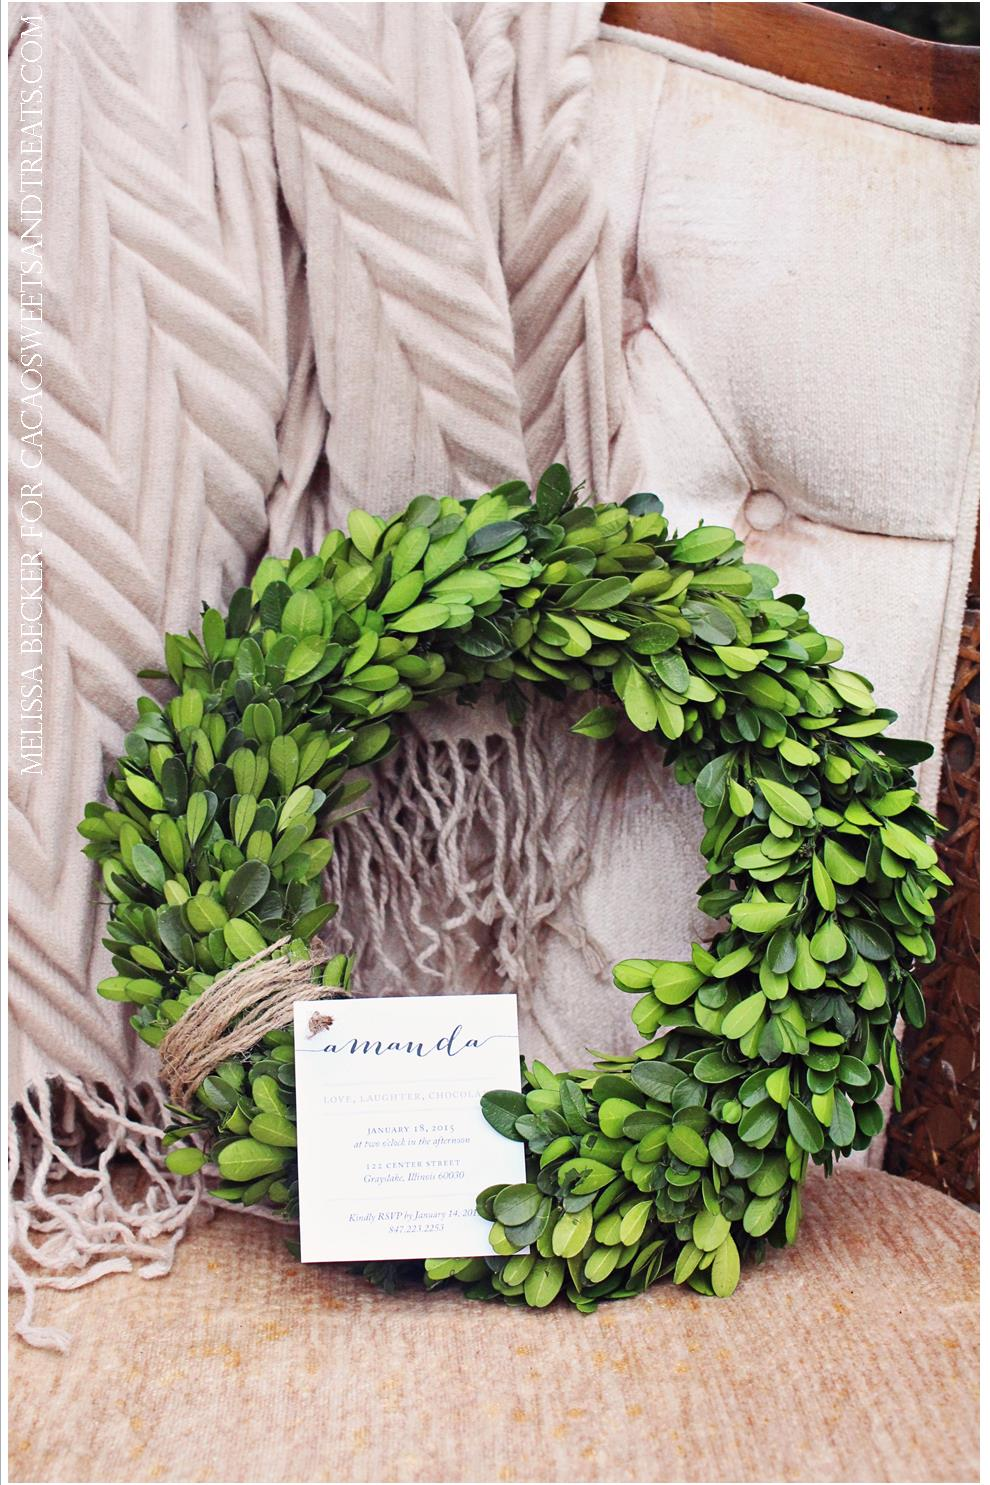 wreath invitation melissa becker for cacaosweetsandtreats.jpg